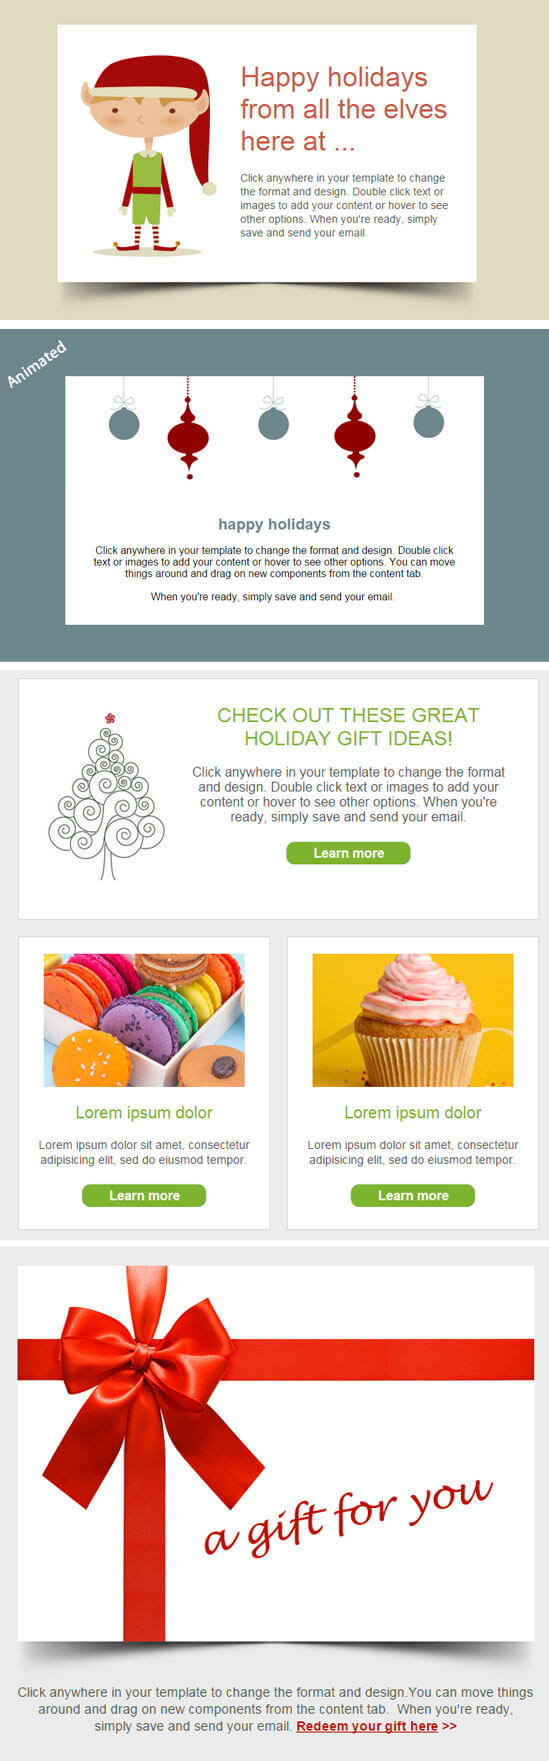 Christmas Email Templates Are LIVE!